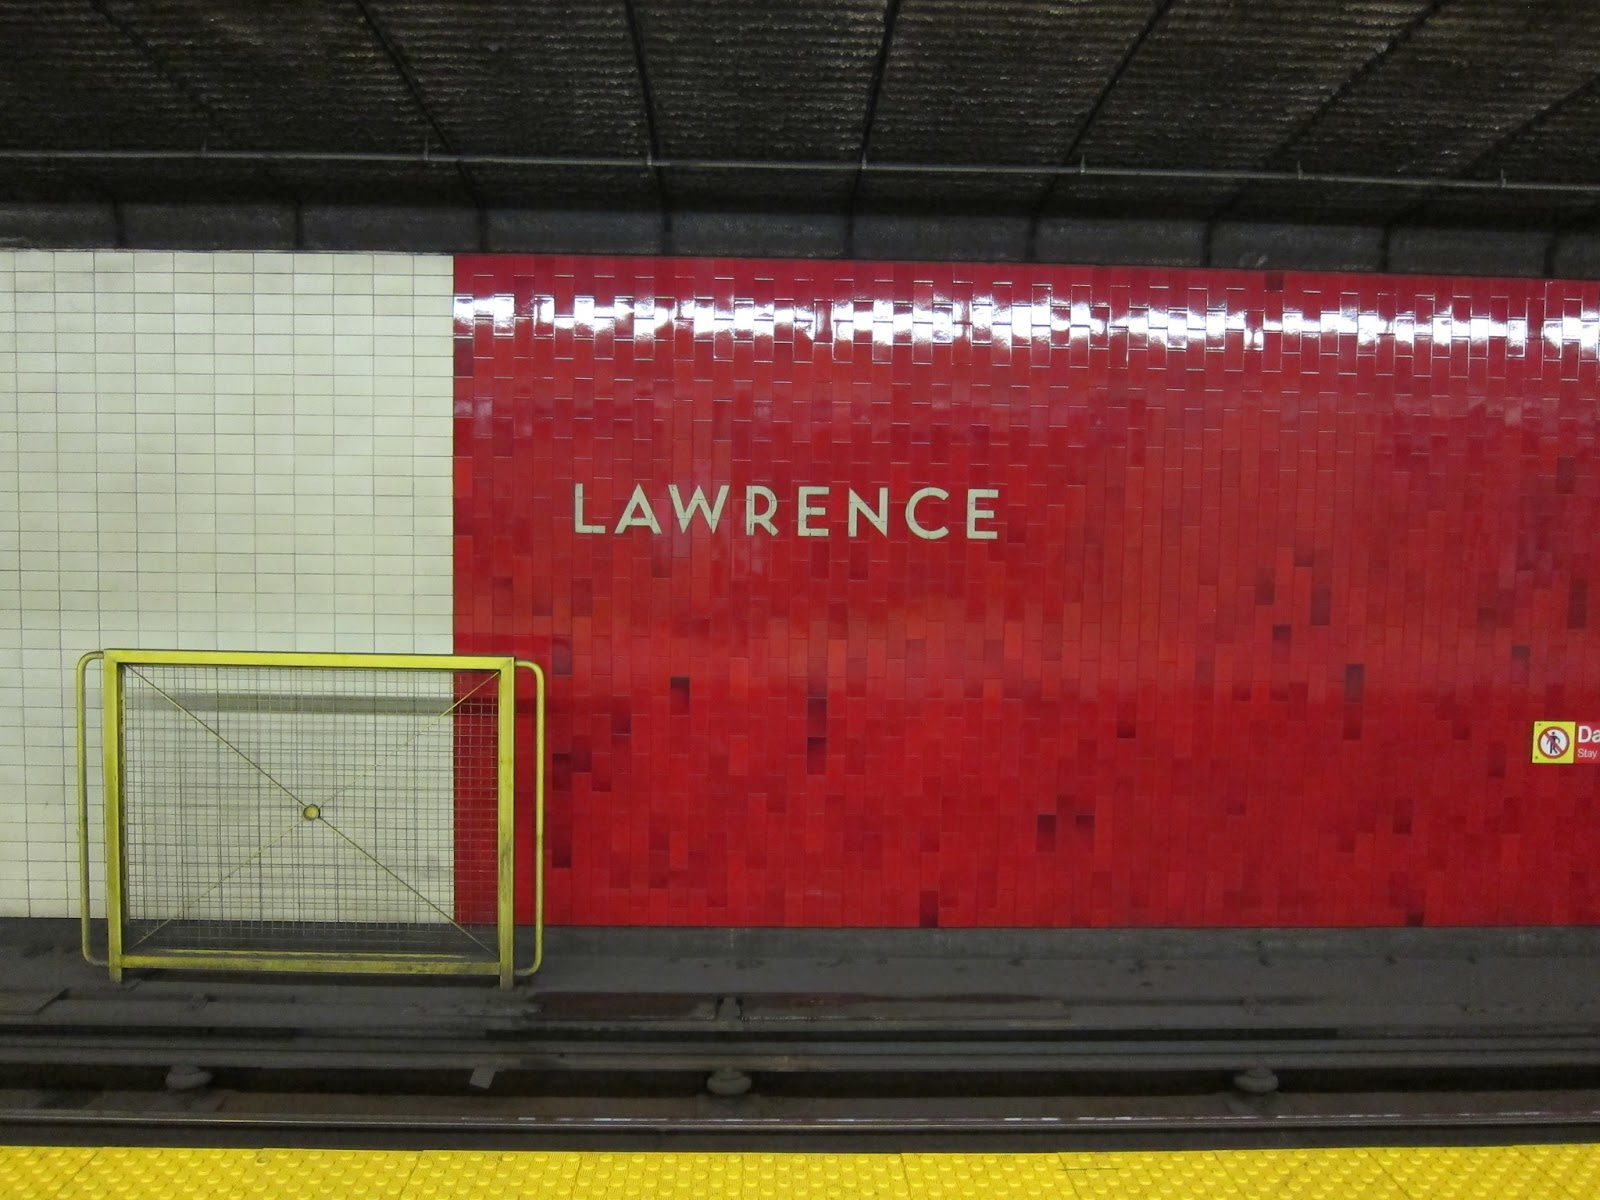 Lawrence station identification